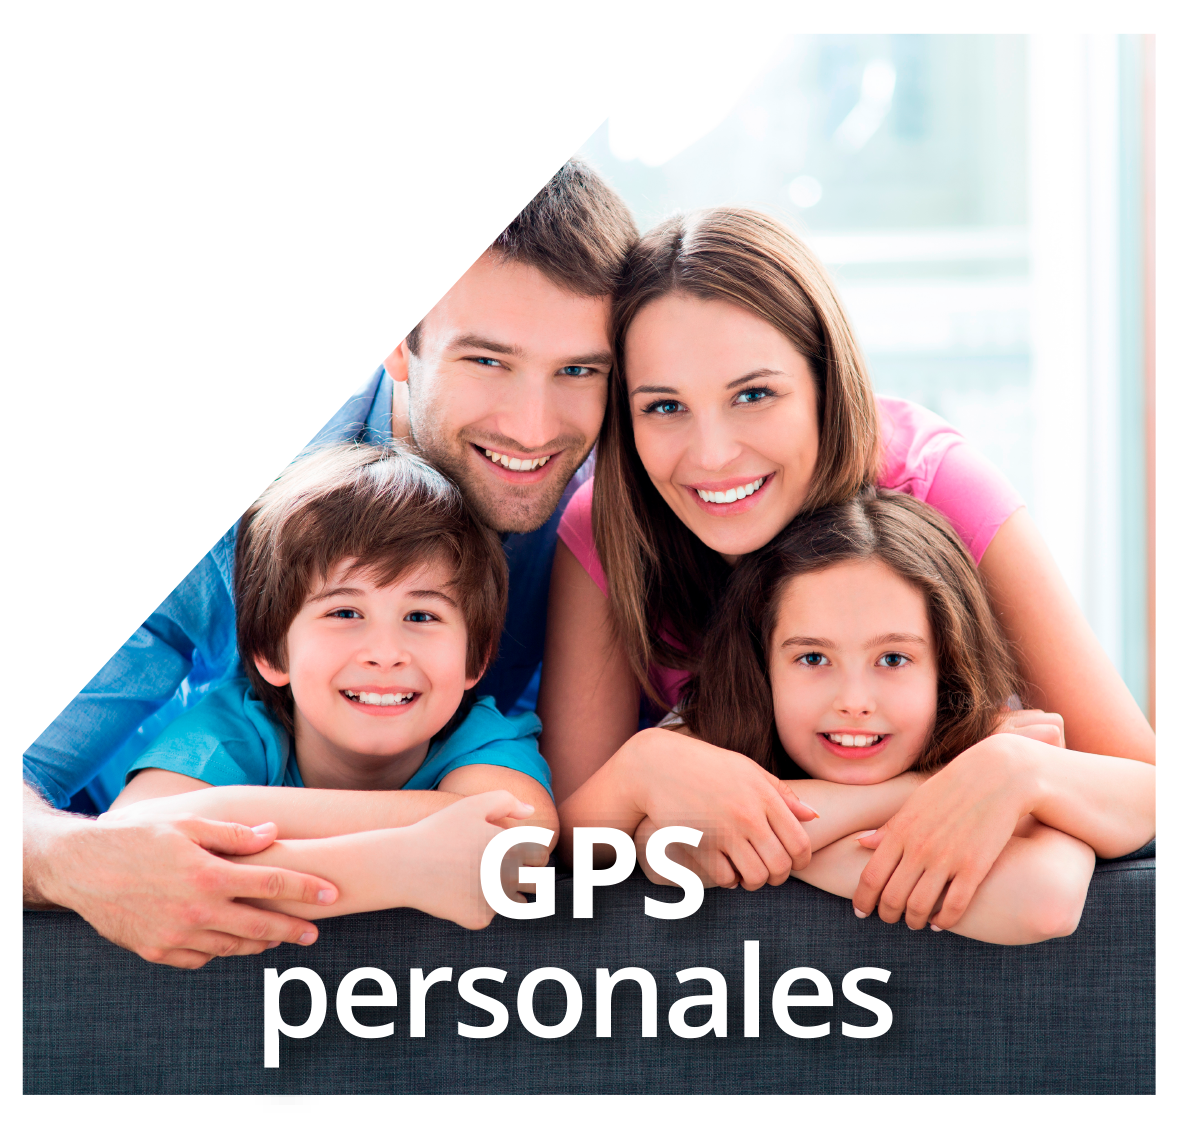 BBOX Security Seguridad guardias virtuales personales - Servicio de Rastreo Satelital y GPS en Guadalajara | BBOX Security